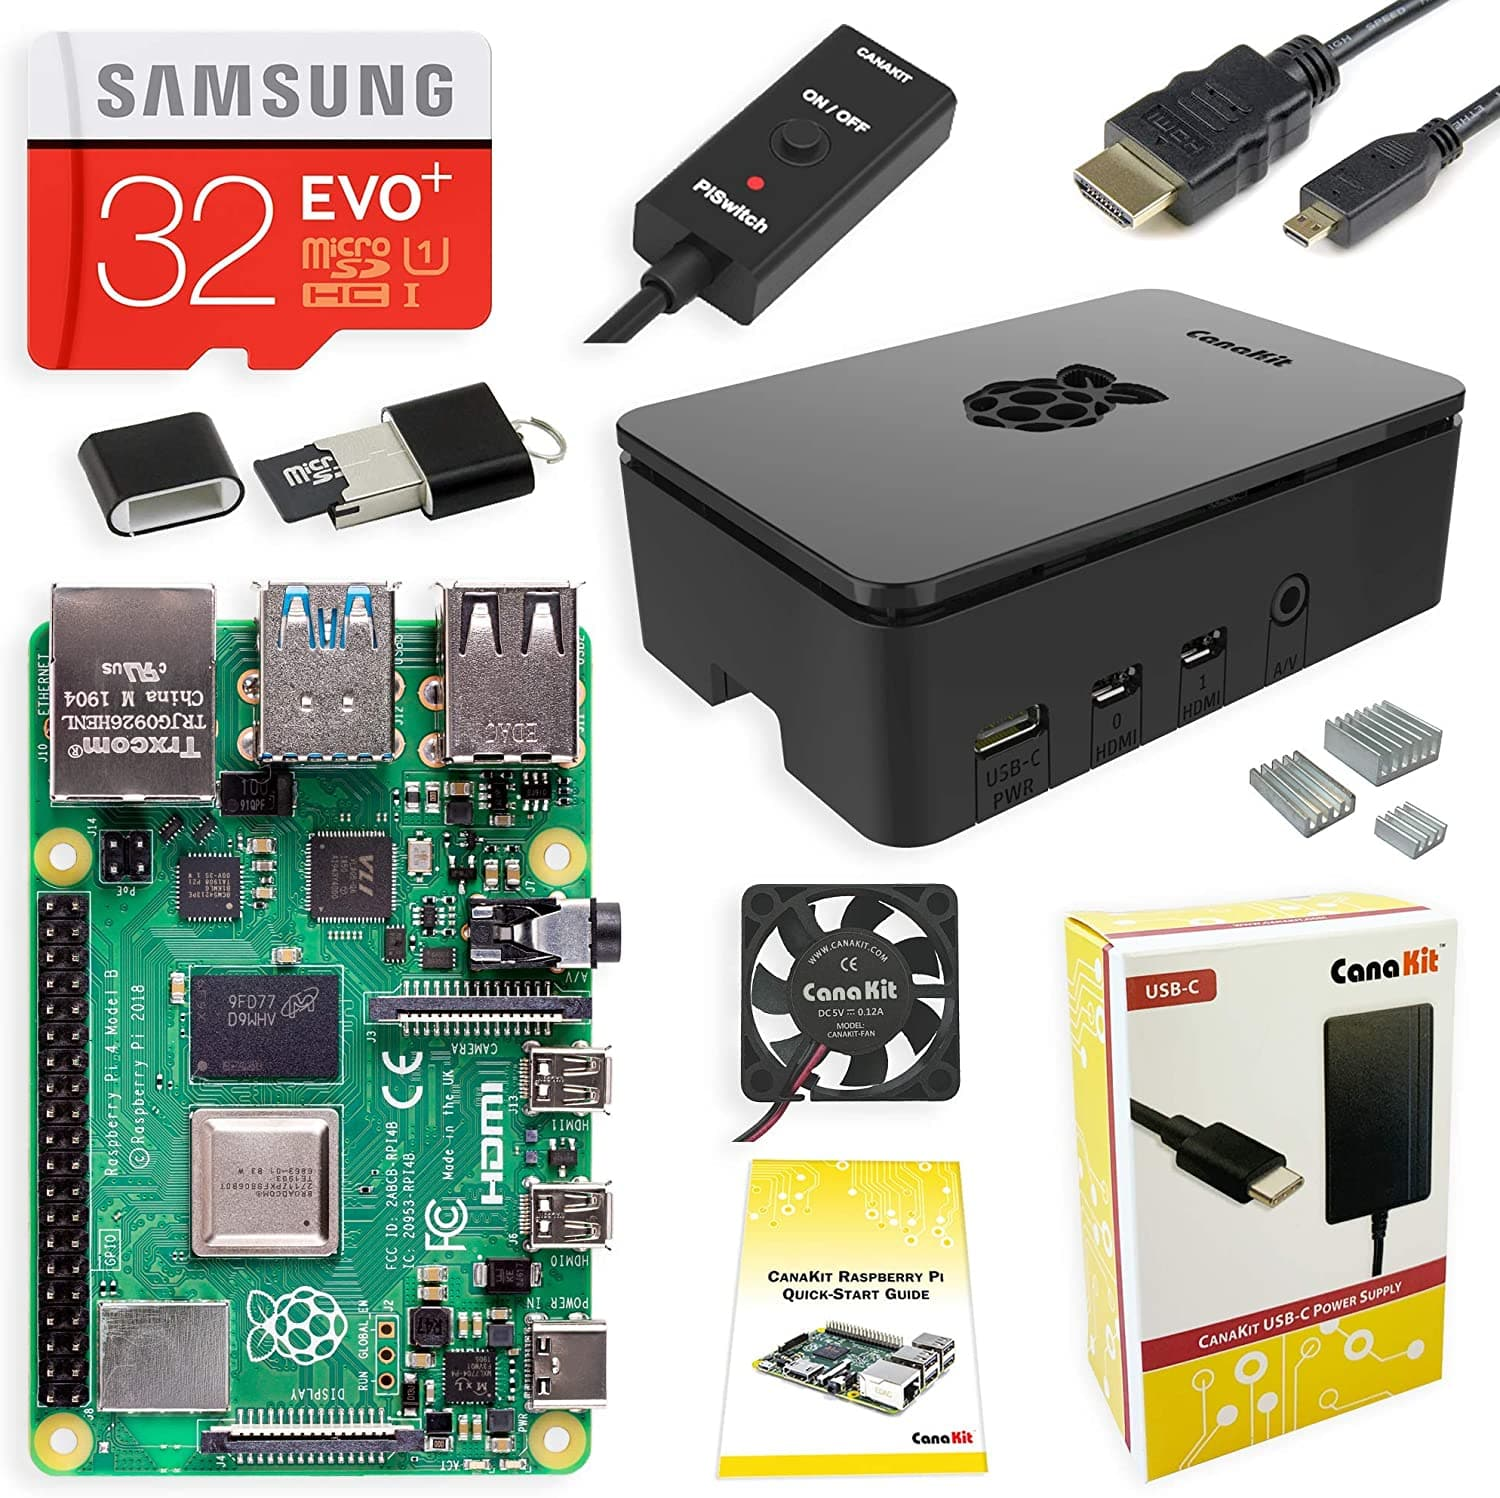 CanaKit Raspberry Pi 4 4GB Starter Kit - 4GB RAM Black case  10% COUPON APPLIED AT CHECKOUT $89.99